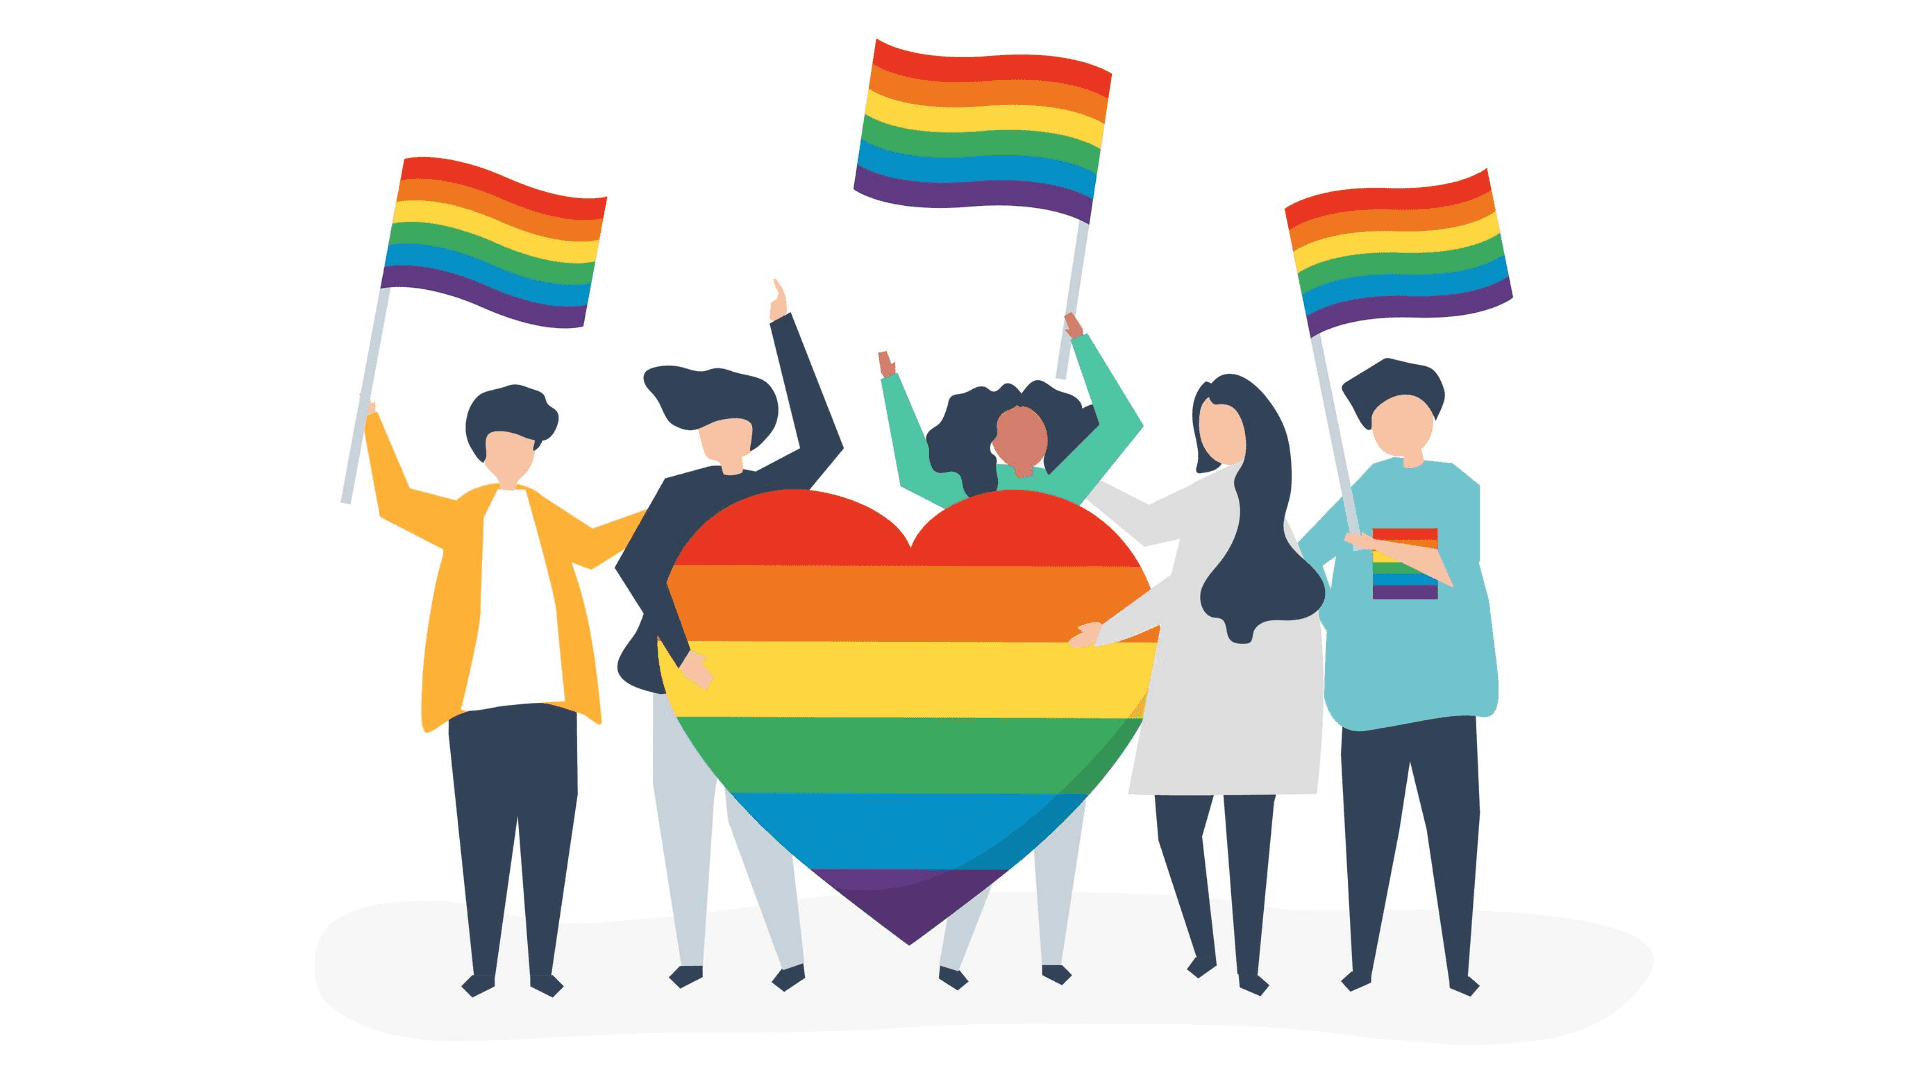 Animation of people holding rainbow coloured flags and a ranbow coloured heart in support of th LGBTQ community